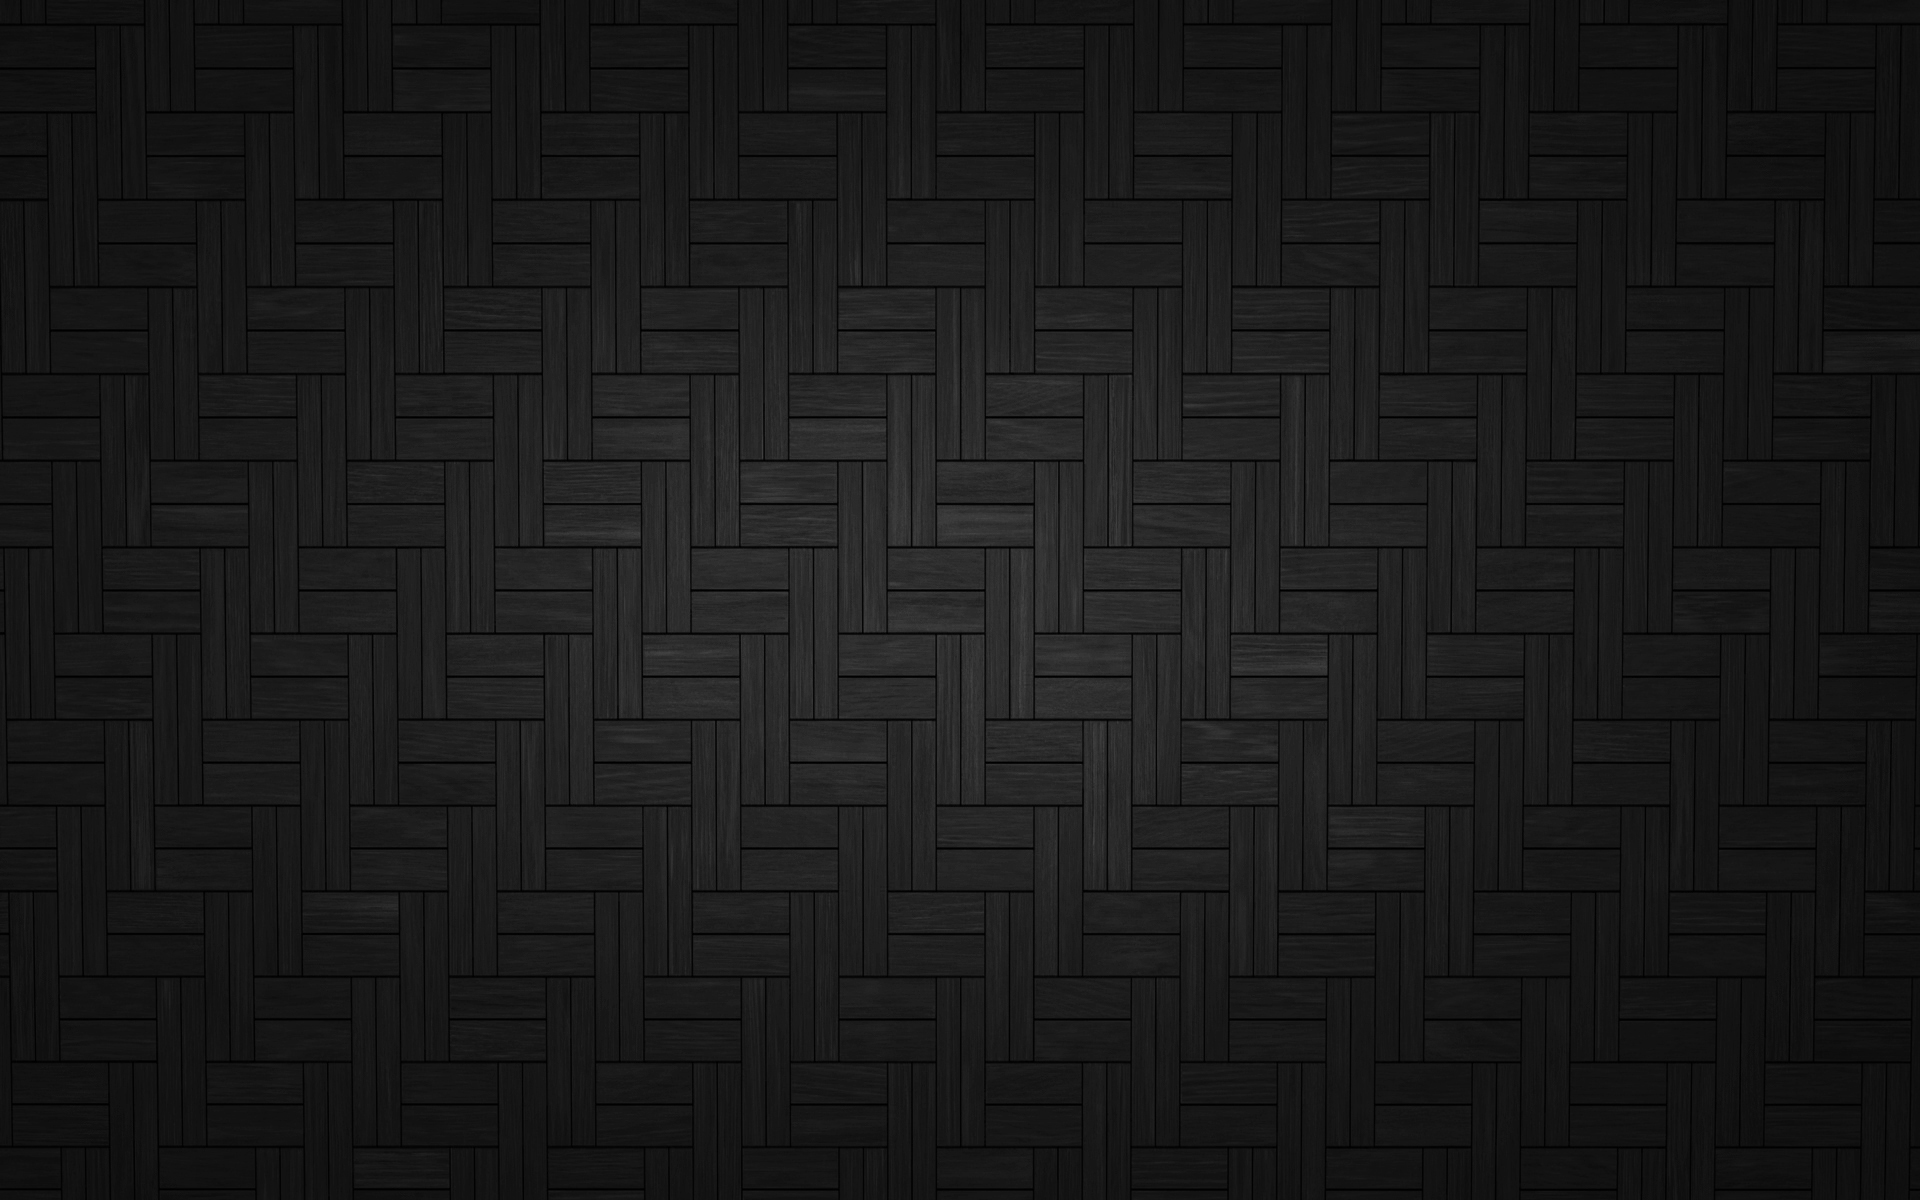 Dark Textures clipart black wool Background Background Download Fifty Photo